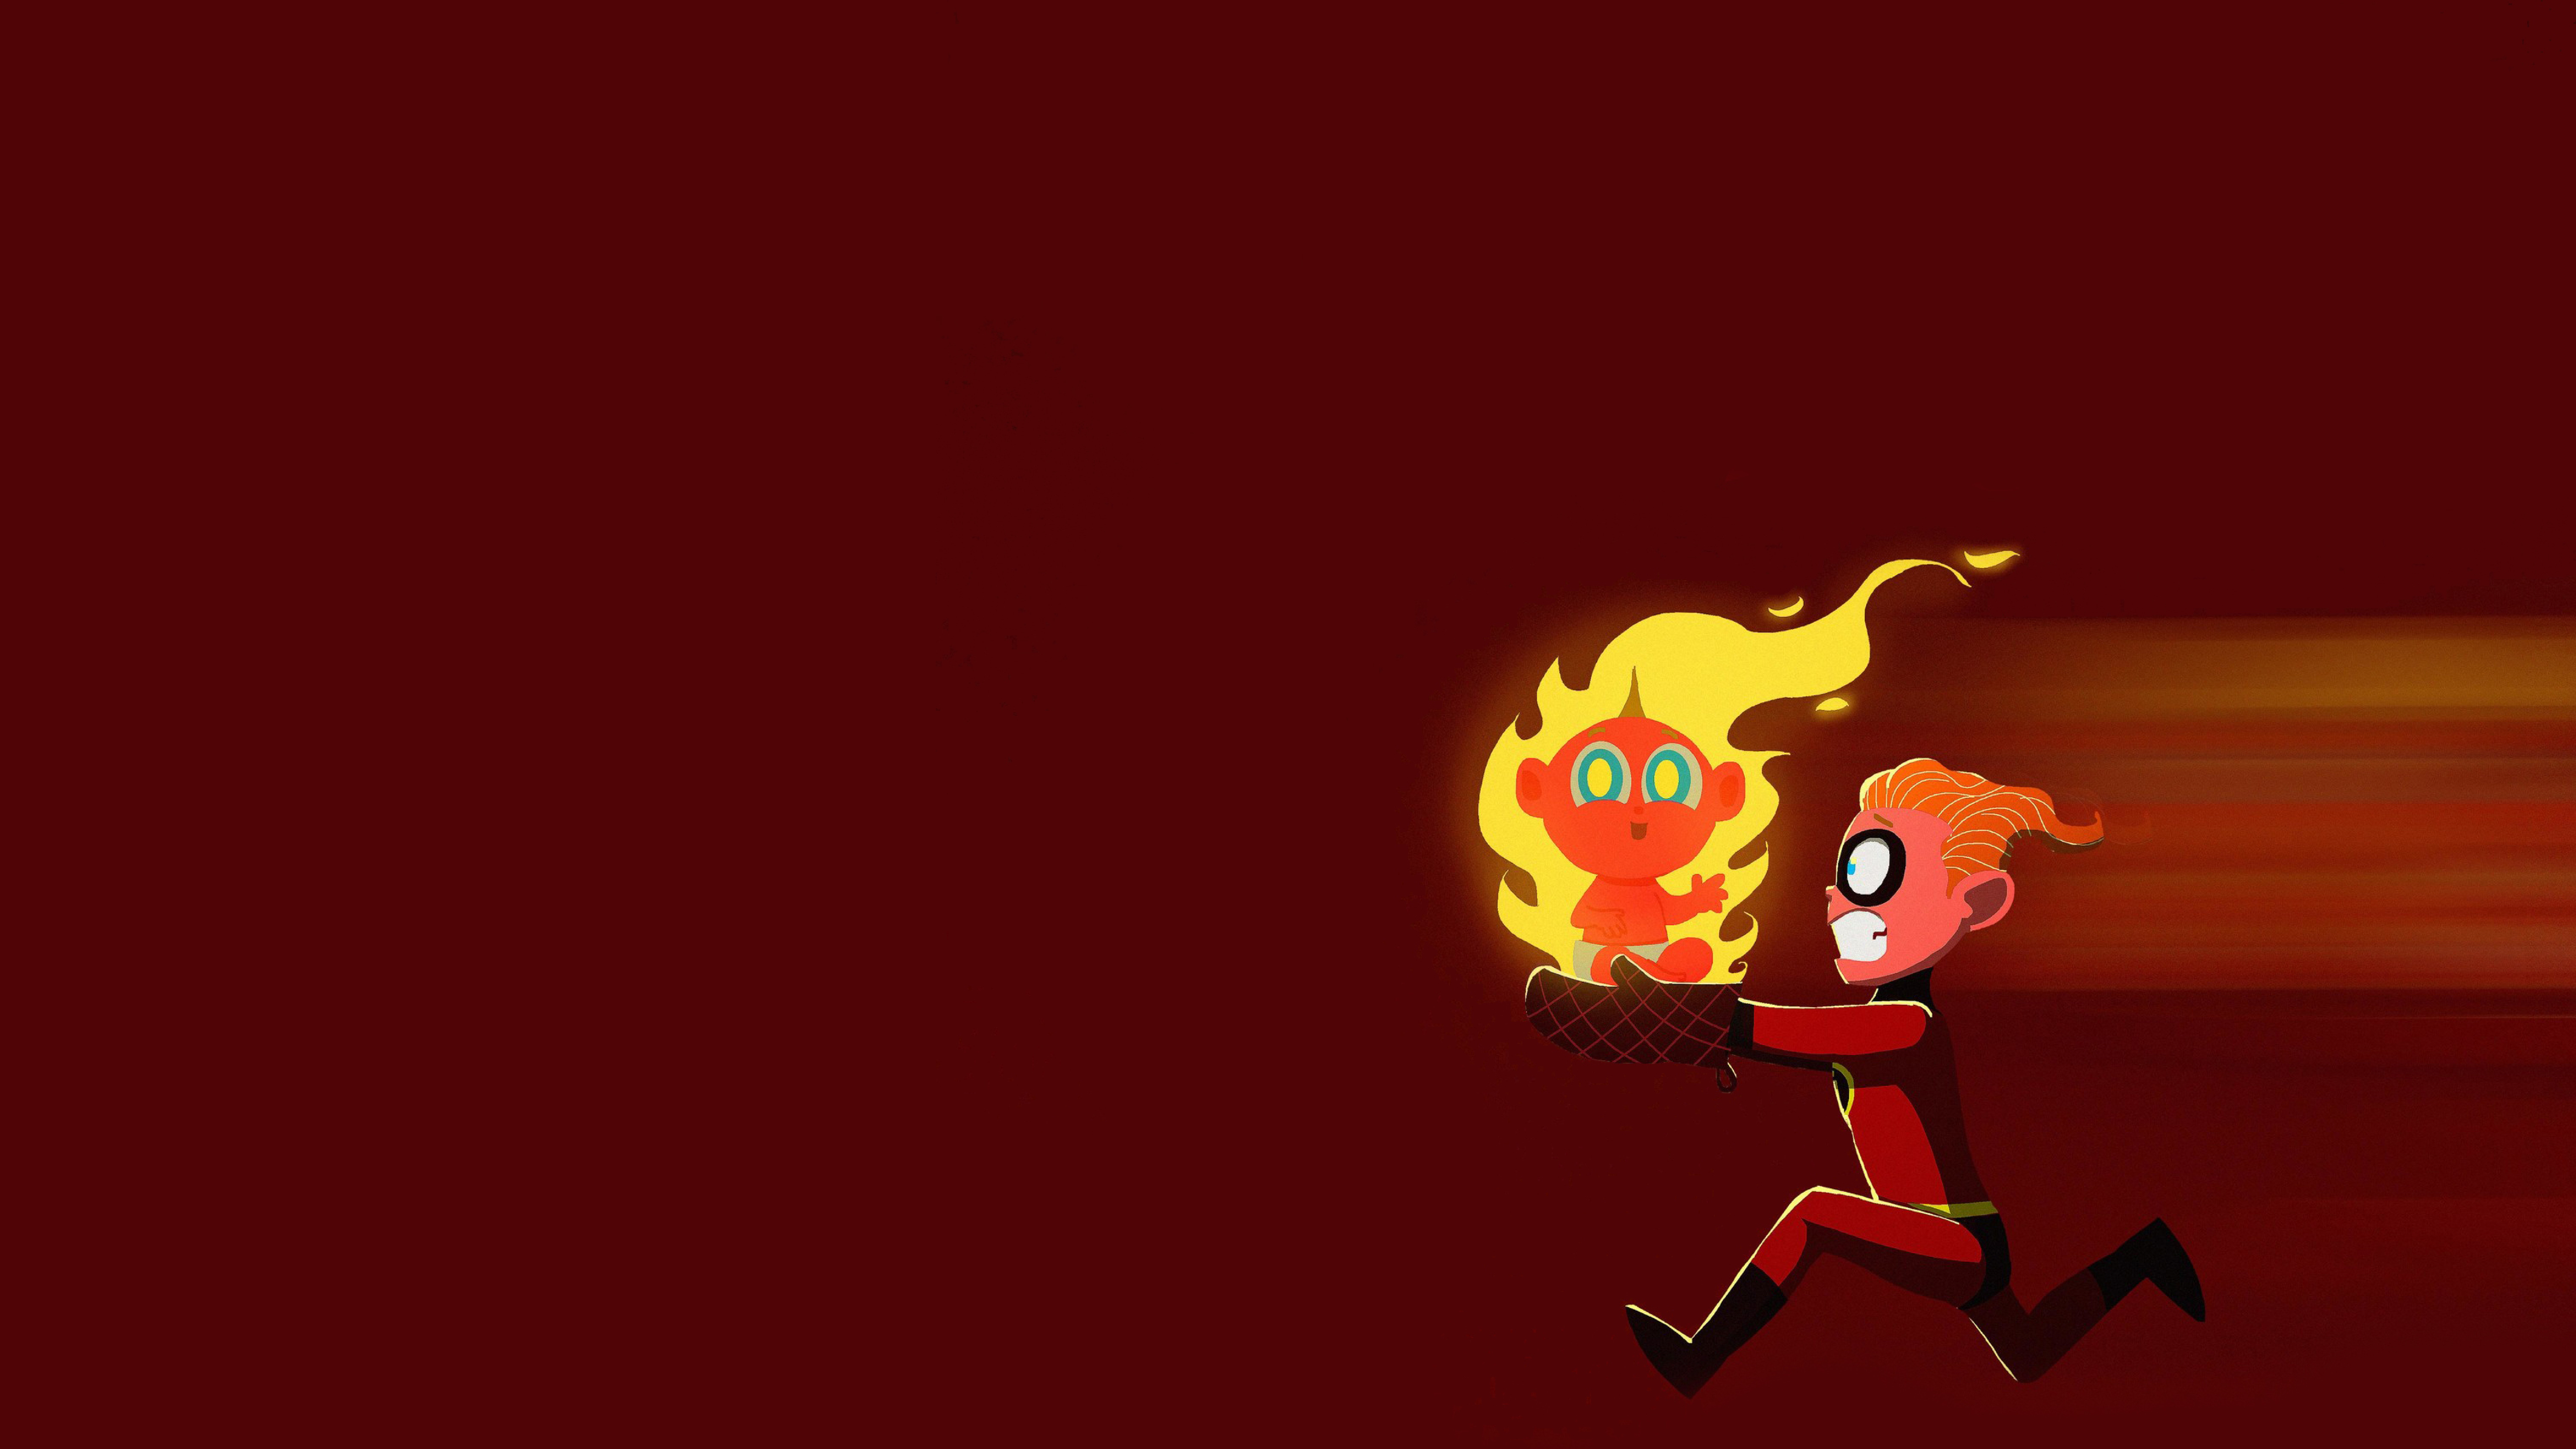 Incredible Ii Wallpaper Free: Jack Jack Parr And Dash In The Incredibles 2 Artwork, HD